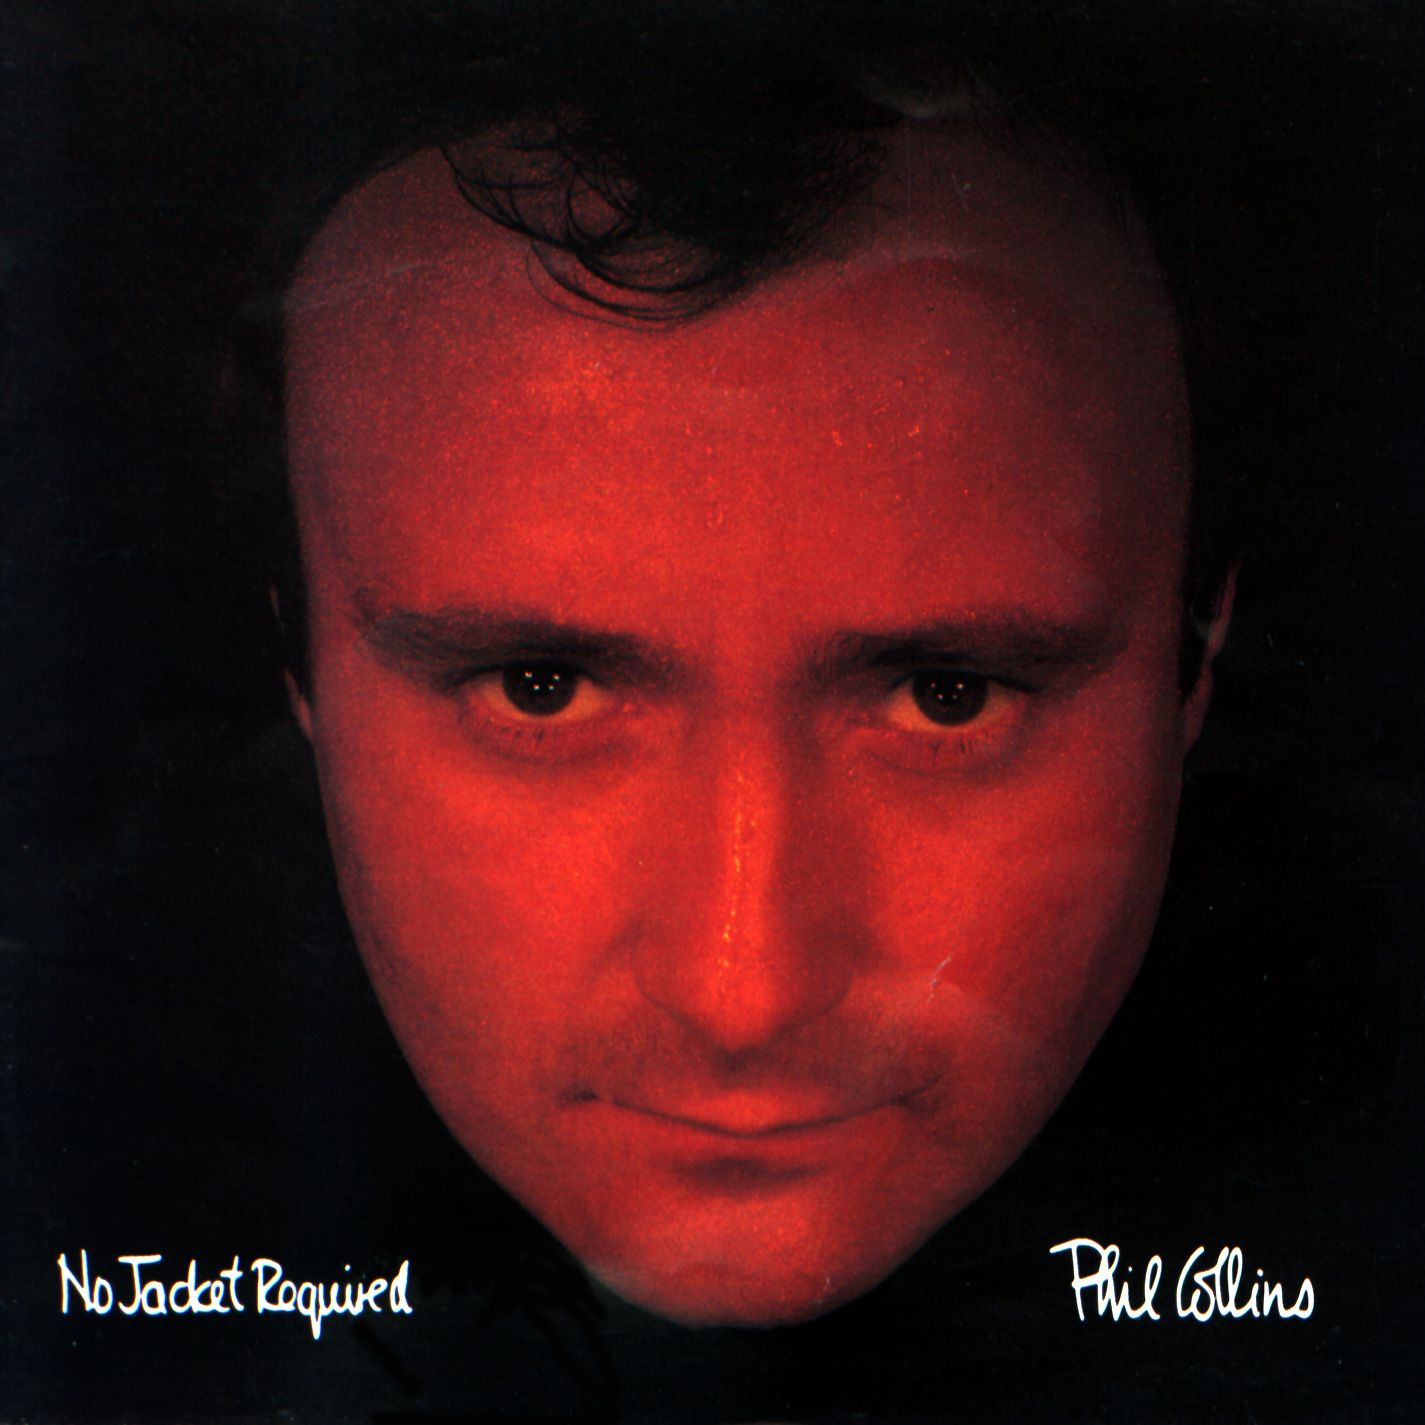 http://3.bp.blogspot.com/-V49hy7BG-2A/UDkCRV_PE3I/AAAAAAAAEhA/lR9ViVQ0sd8/s1600/Phil+Collins+-+No+Jacket+Required+(1985).jpg